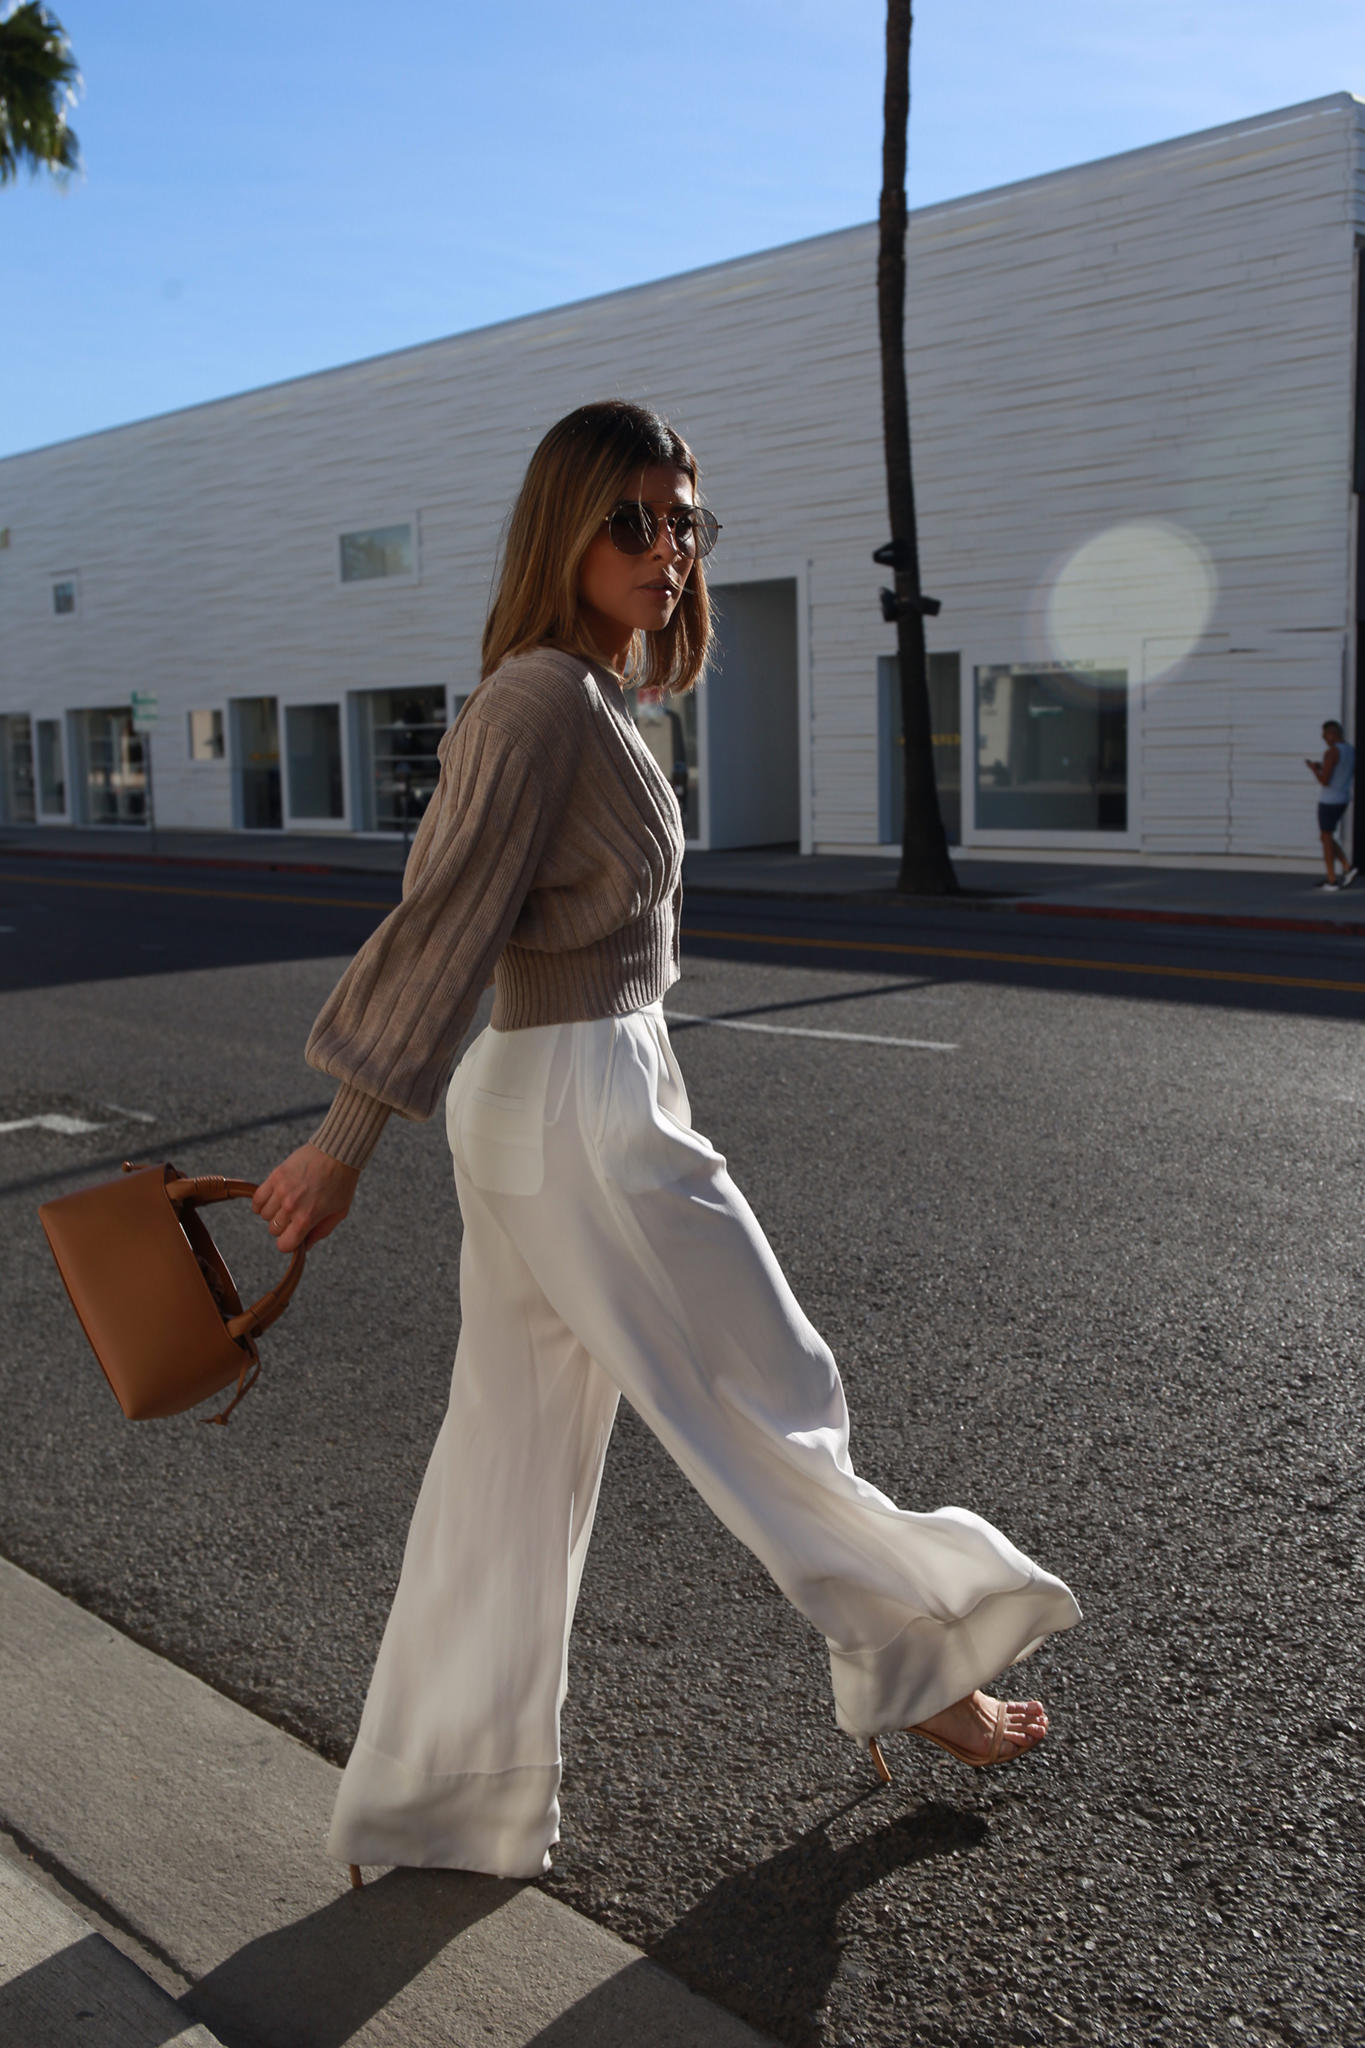 The Fall Outfit to Wear for Work and Play by Pam Hetlinger | TheGirlFromPanama.com | Chic fall look, fall outfit ideas for work, classy fall outfit, wide leg pants, ribbed cardigan, oversized cardigan, carolina santo domingo bag, cartier watch